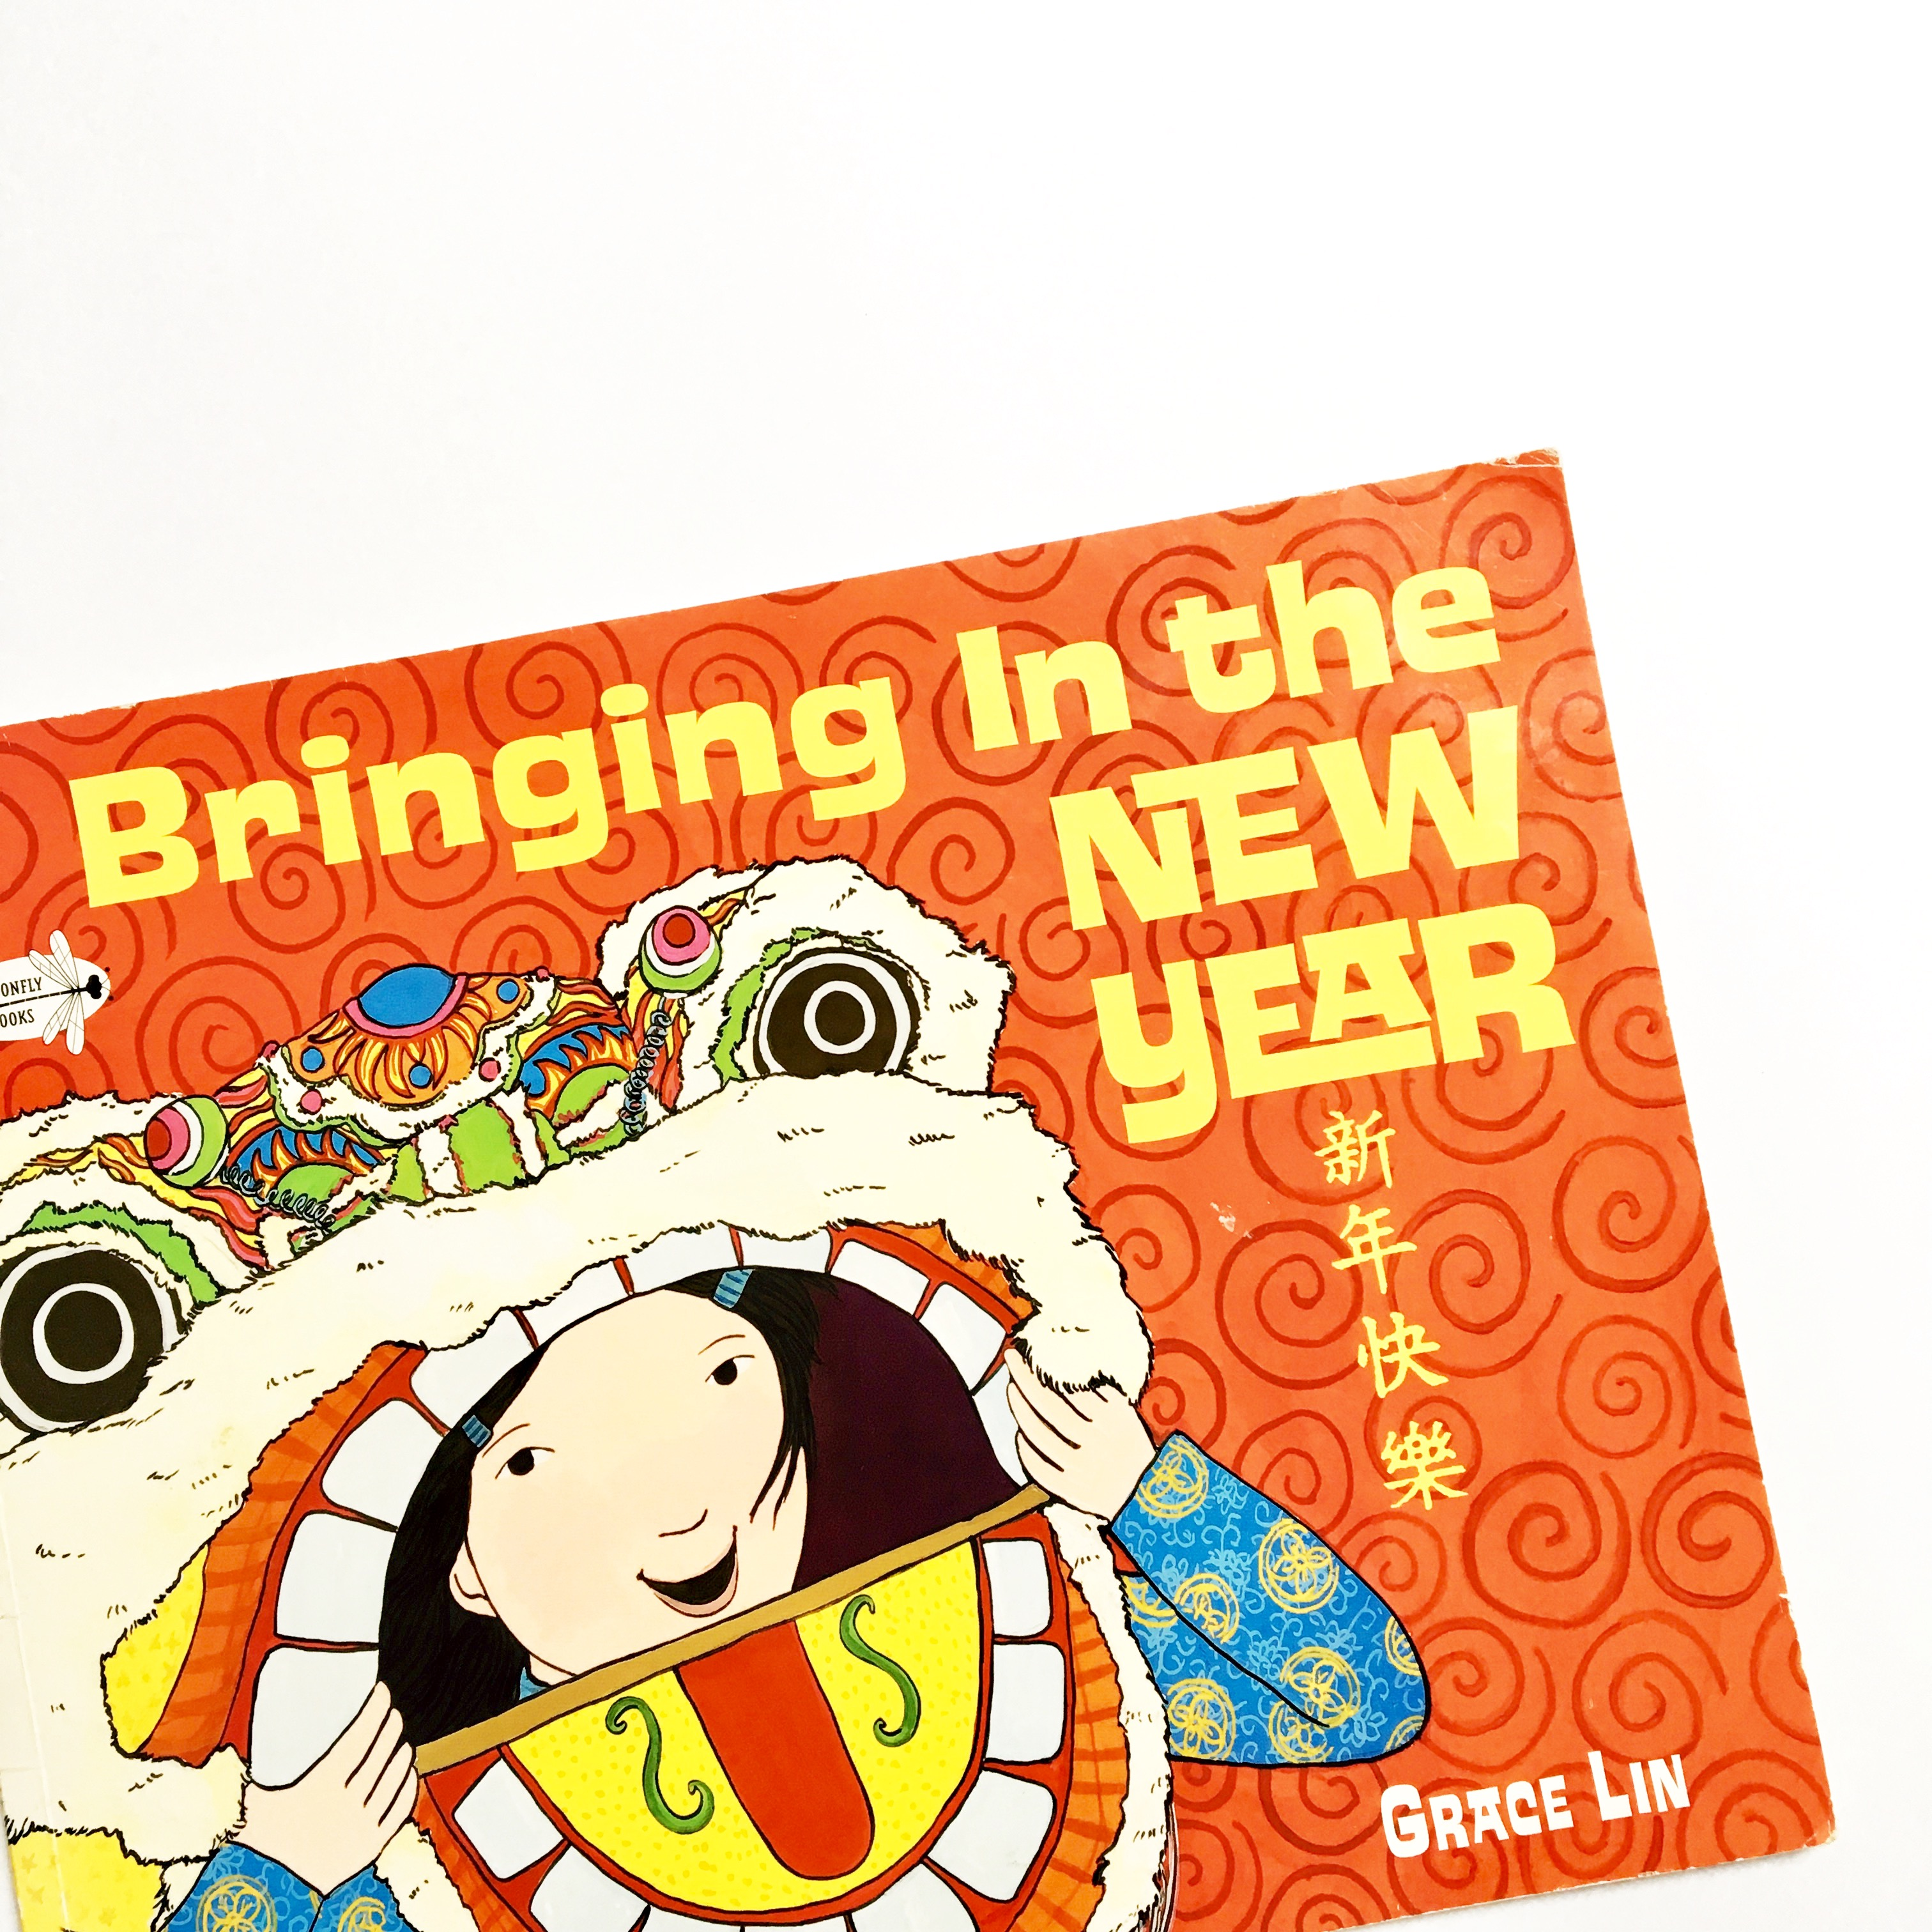 Here are some of our favourite Chinese New Year picture books for kids that we hope you enjoy in the Year of the Dog.